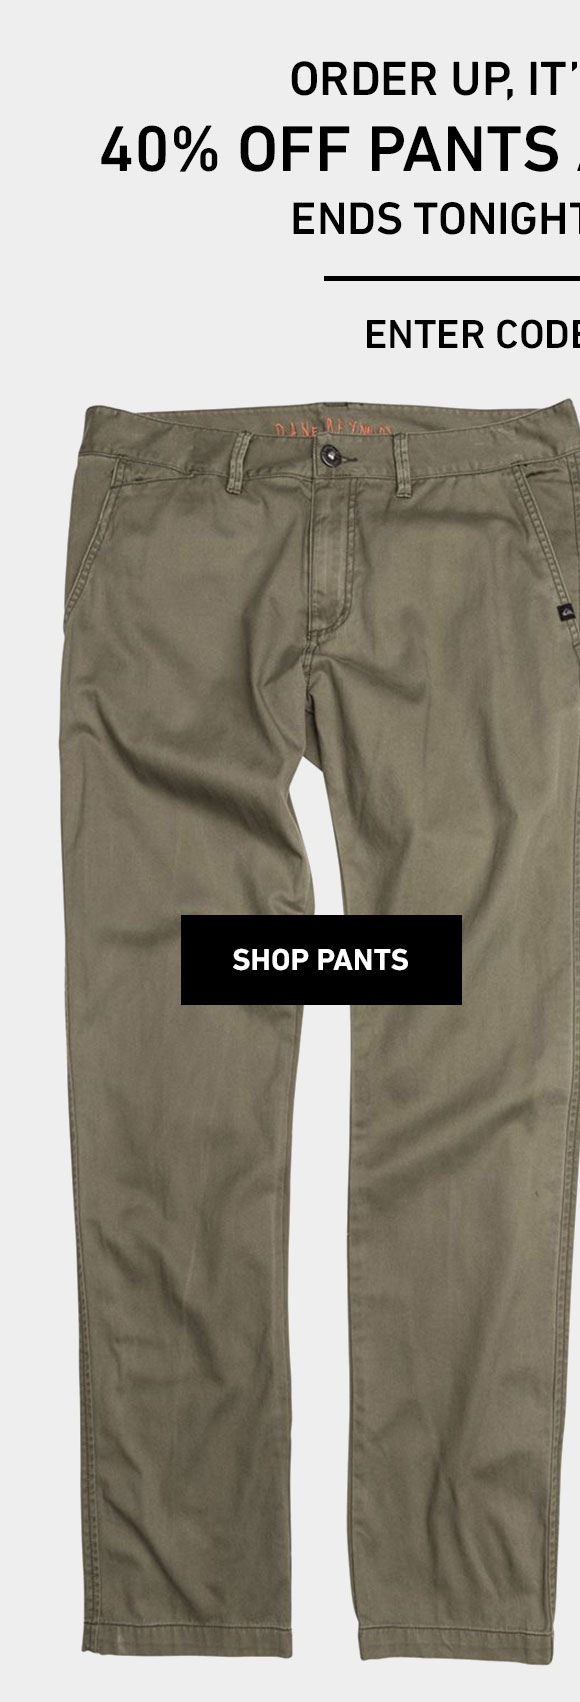 40% Off Pants! Enter Code: STEPITUP